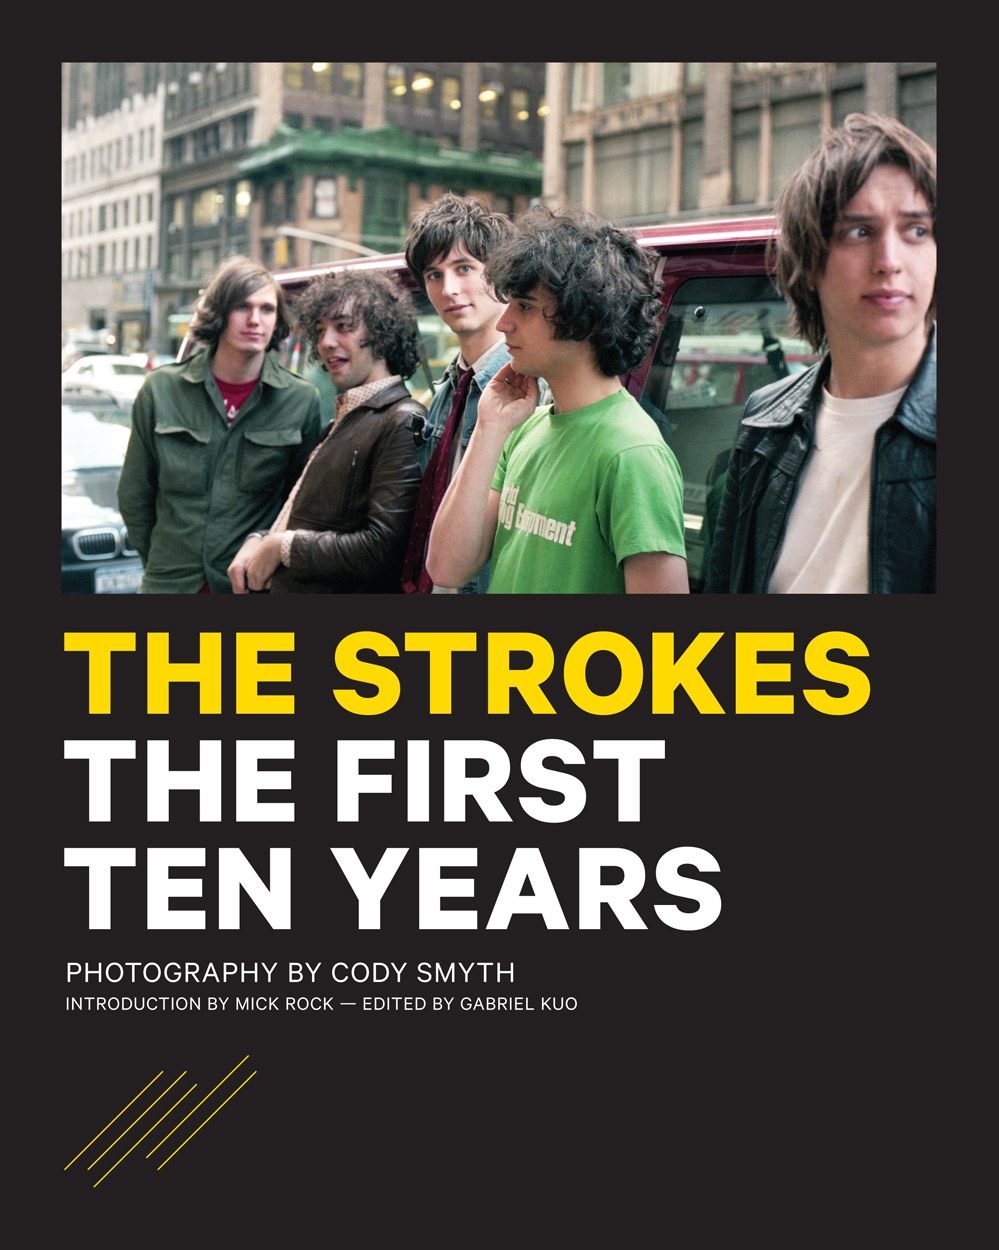 STROKES_Cover_Black copy.jpg